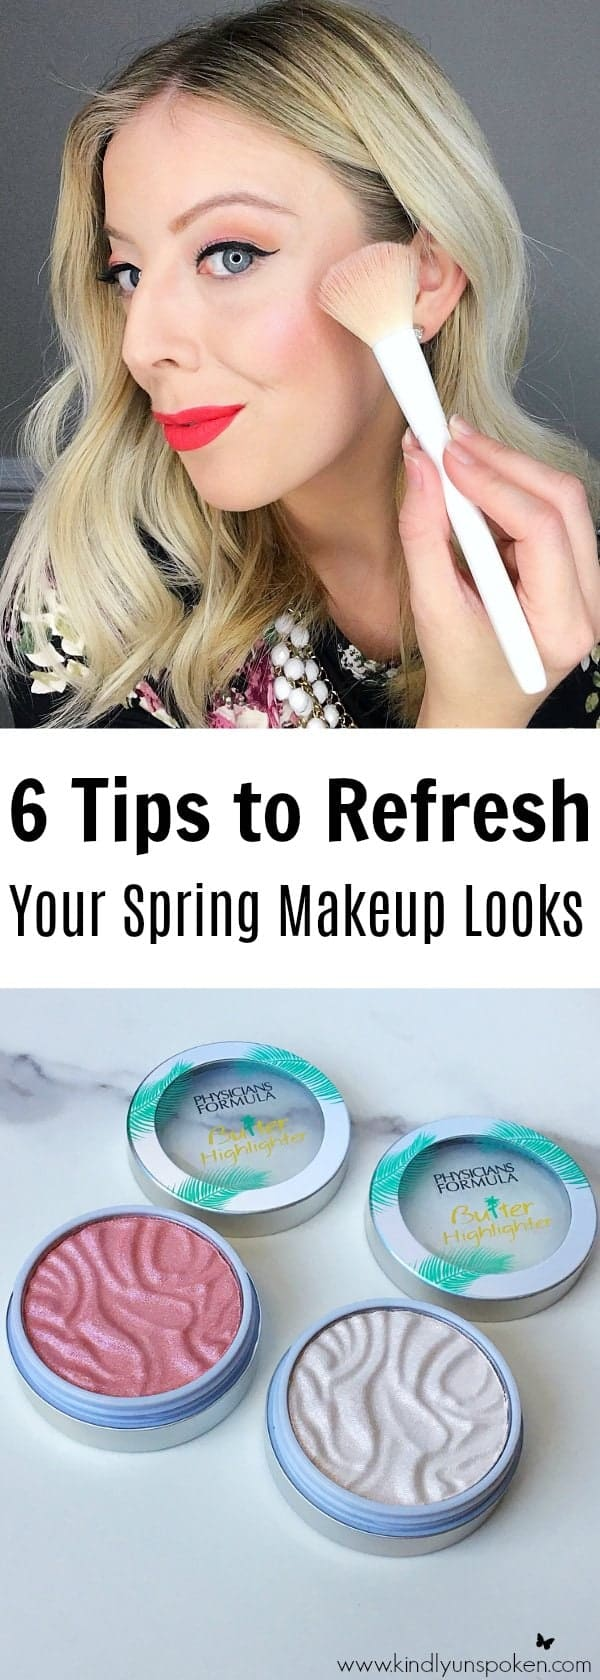 Spring is just around the corner, which means it's time to refresh your makeup collection! Today I'm sharing 6 Tips to Refresh Your Spring Makeup Looks plus I'm including a gorgeous, fresh makeup look featuring some of spring's must-have products and hottest trends! From bright lip colors, peach eyeshadows, to sun-kissed gold skin, it's time to add some color and freshen up your look for spring!